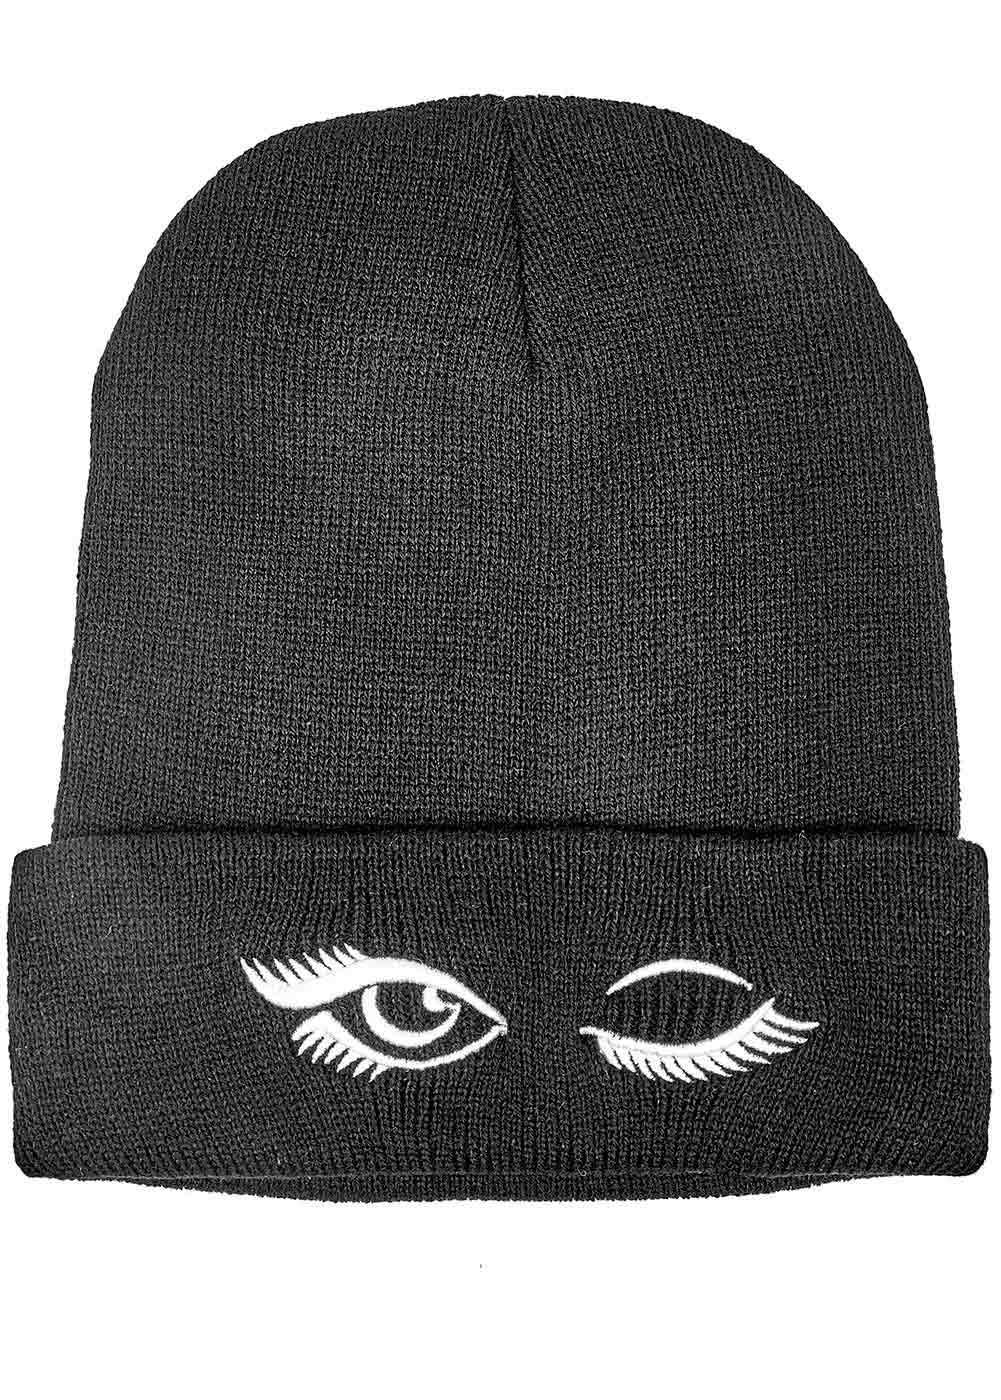 Teenzshop Wink Eye Beanie - Black - Front